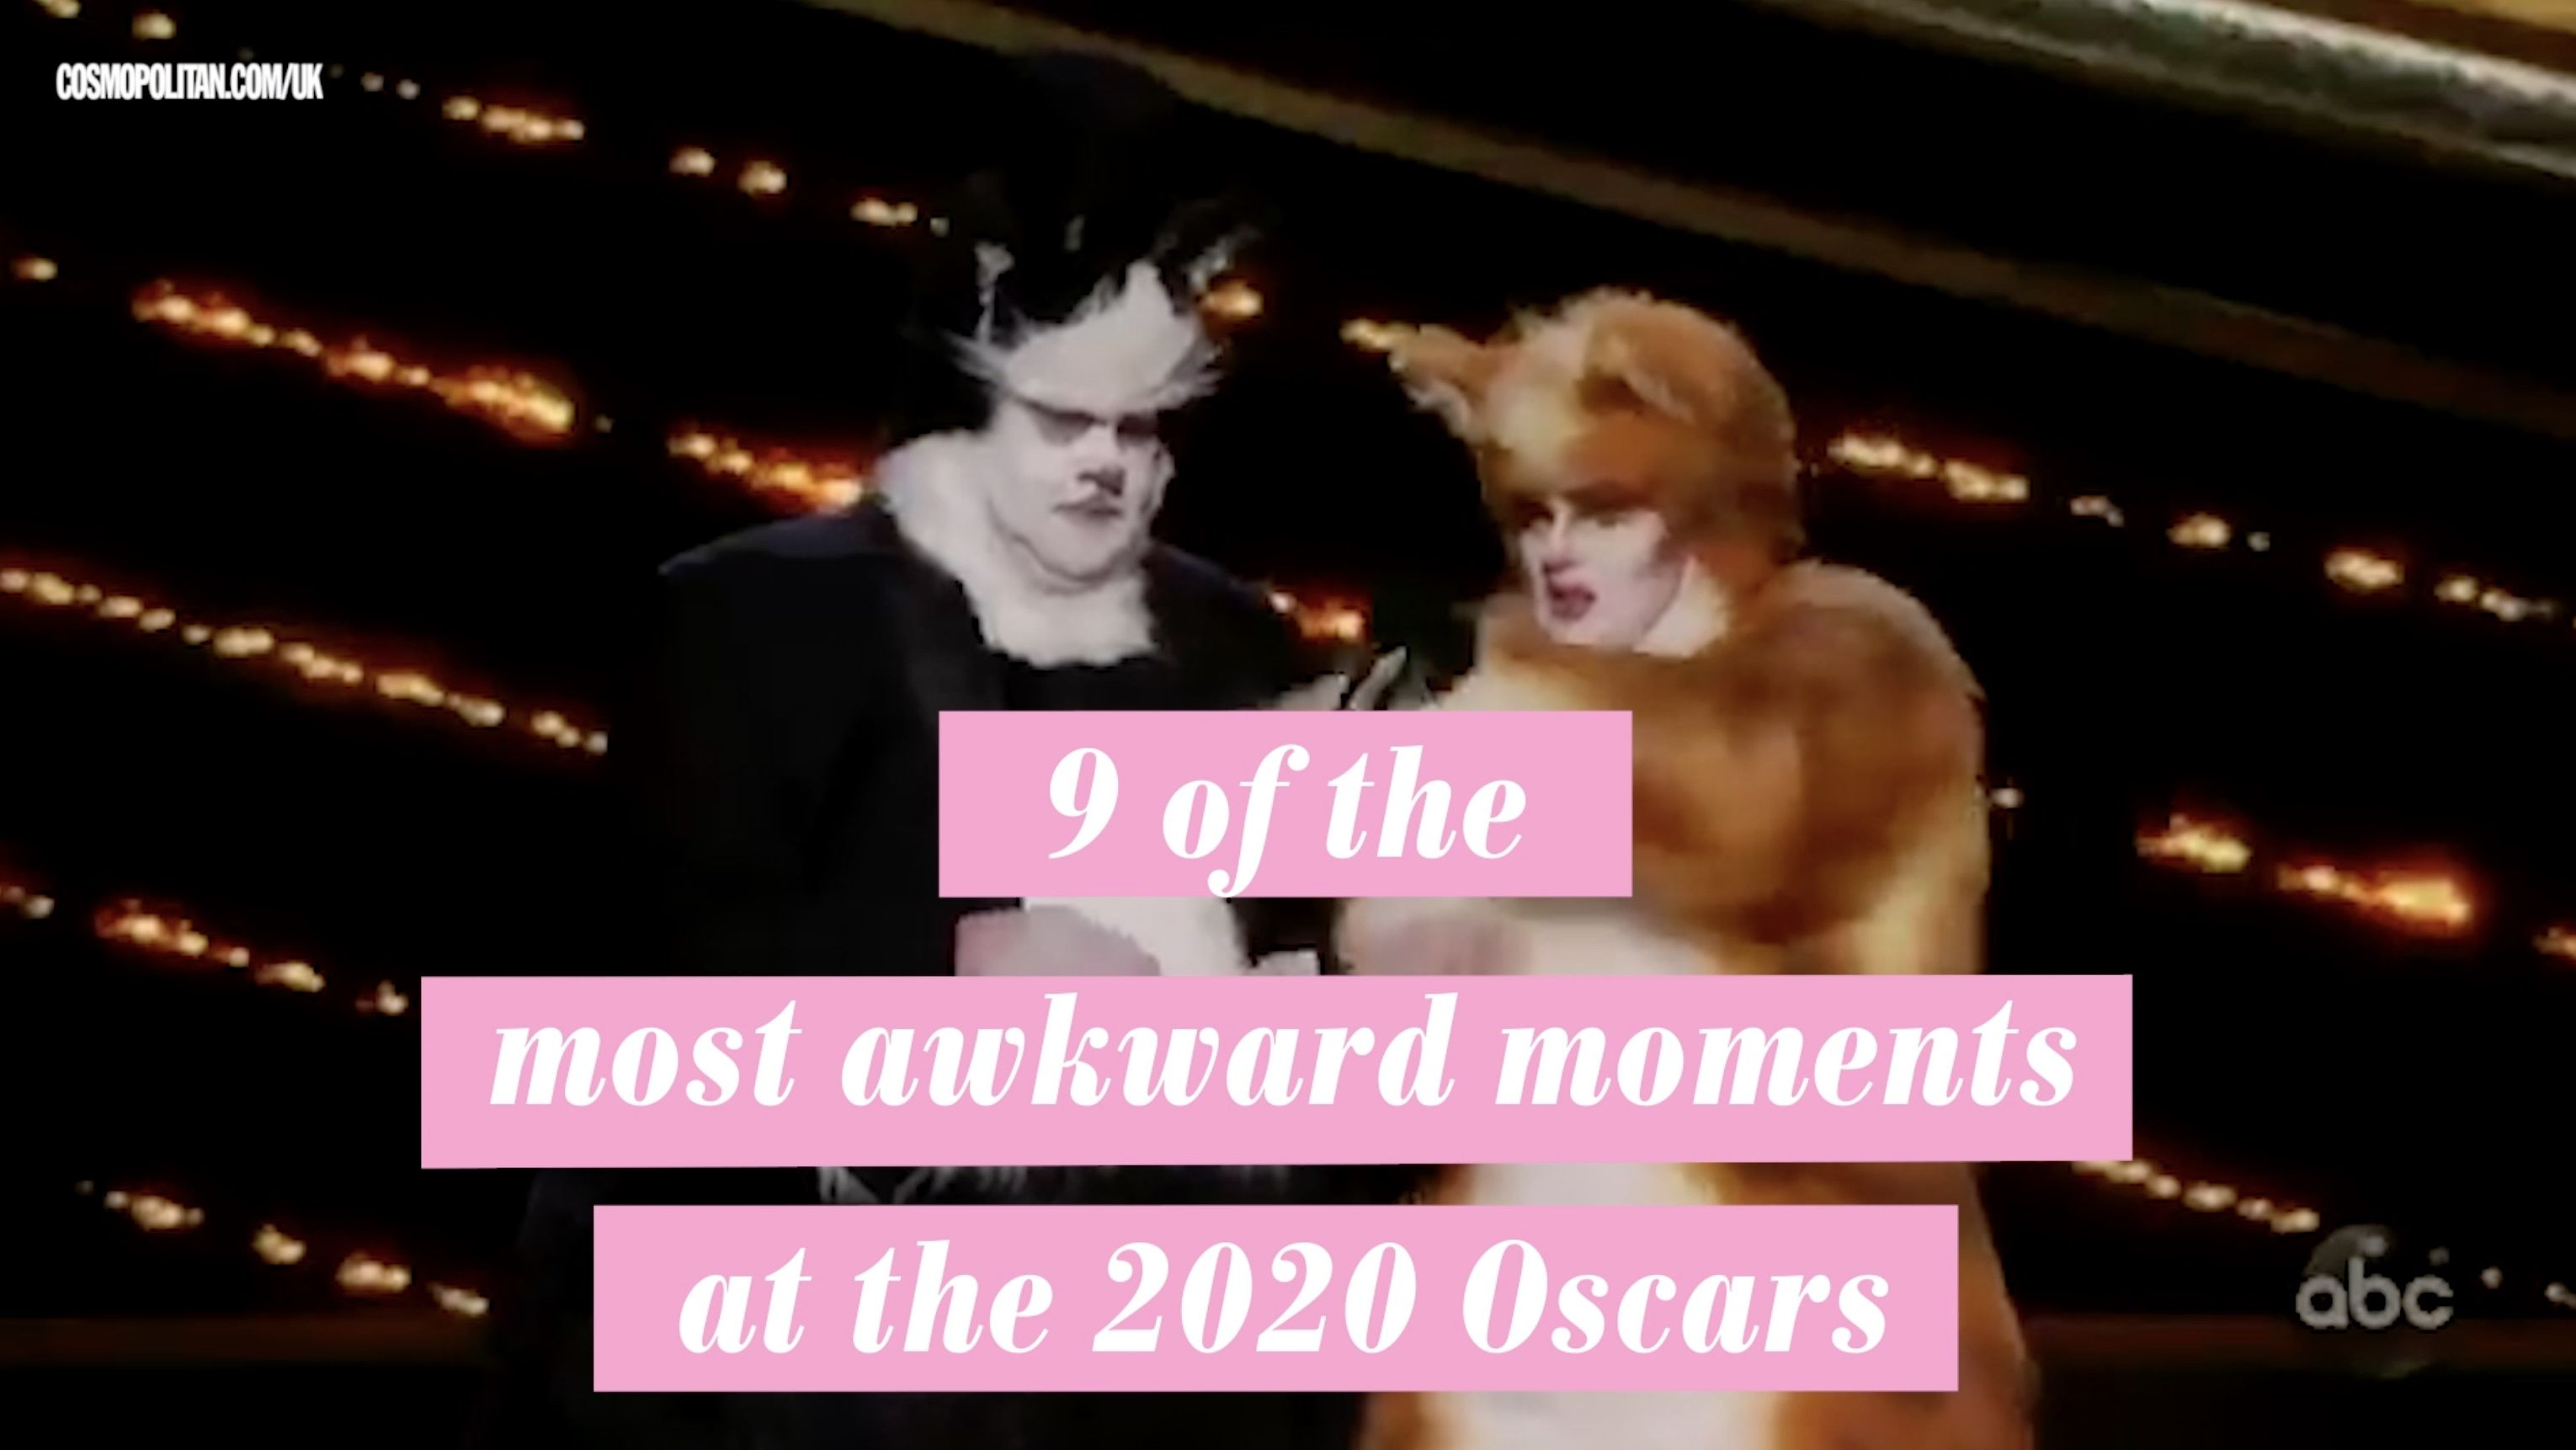 The best behind the scenes moments from the 2020 Oscars